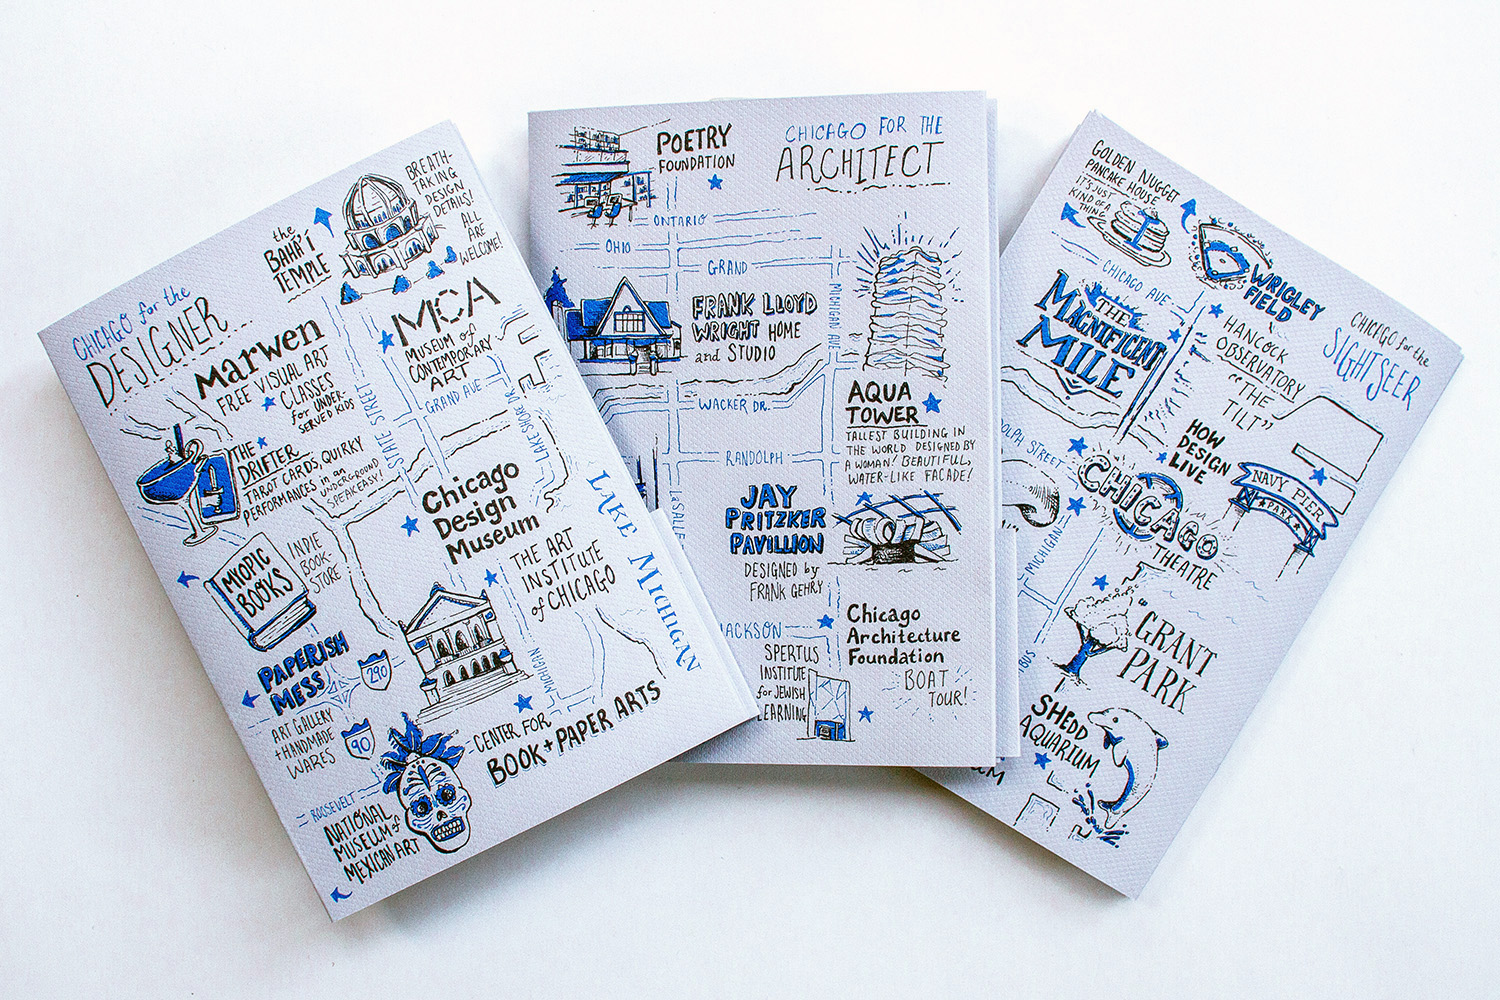 Fanned out video of the designer, architect, and sightseer maps of Chicago, with hand drawn illustrations and custom hand lettering by graphic designer Russell Shaw for Neenah Paper at the HOW Design Live conference in 2017.